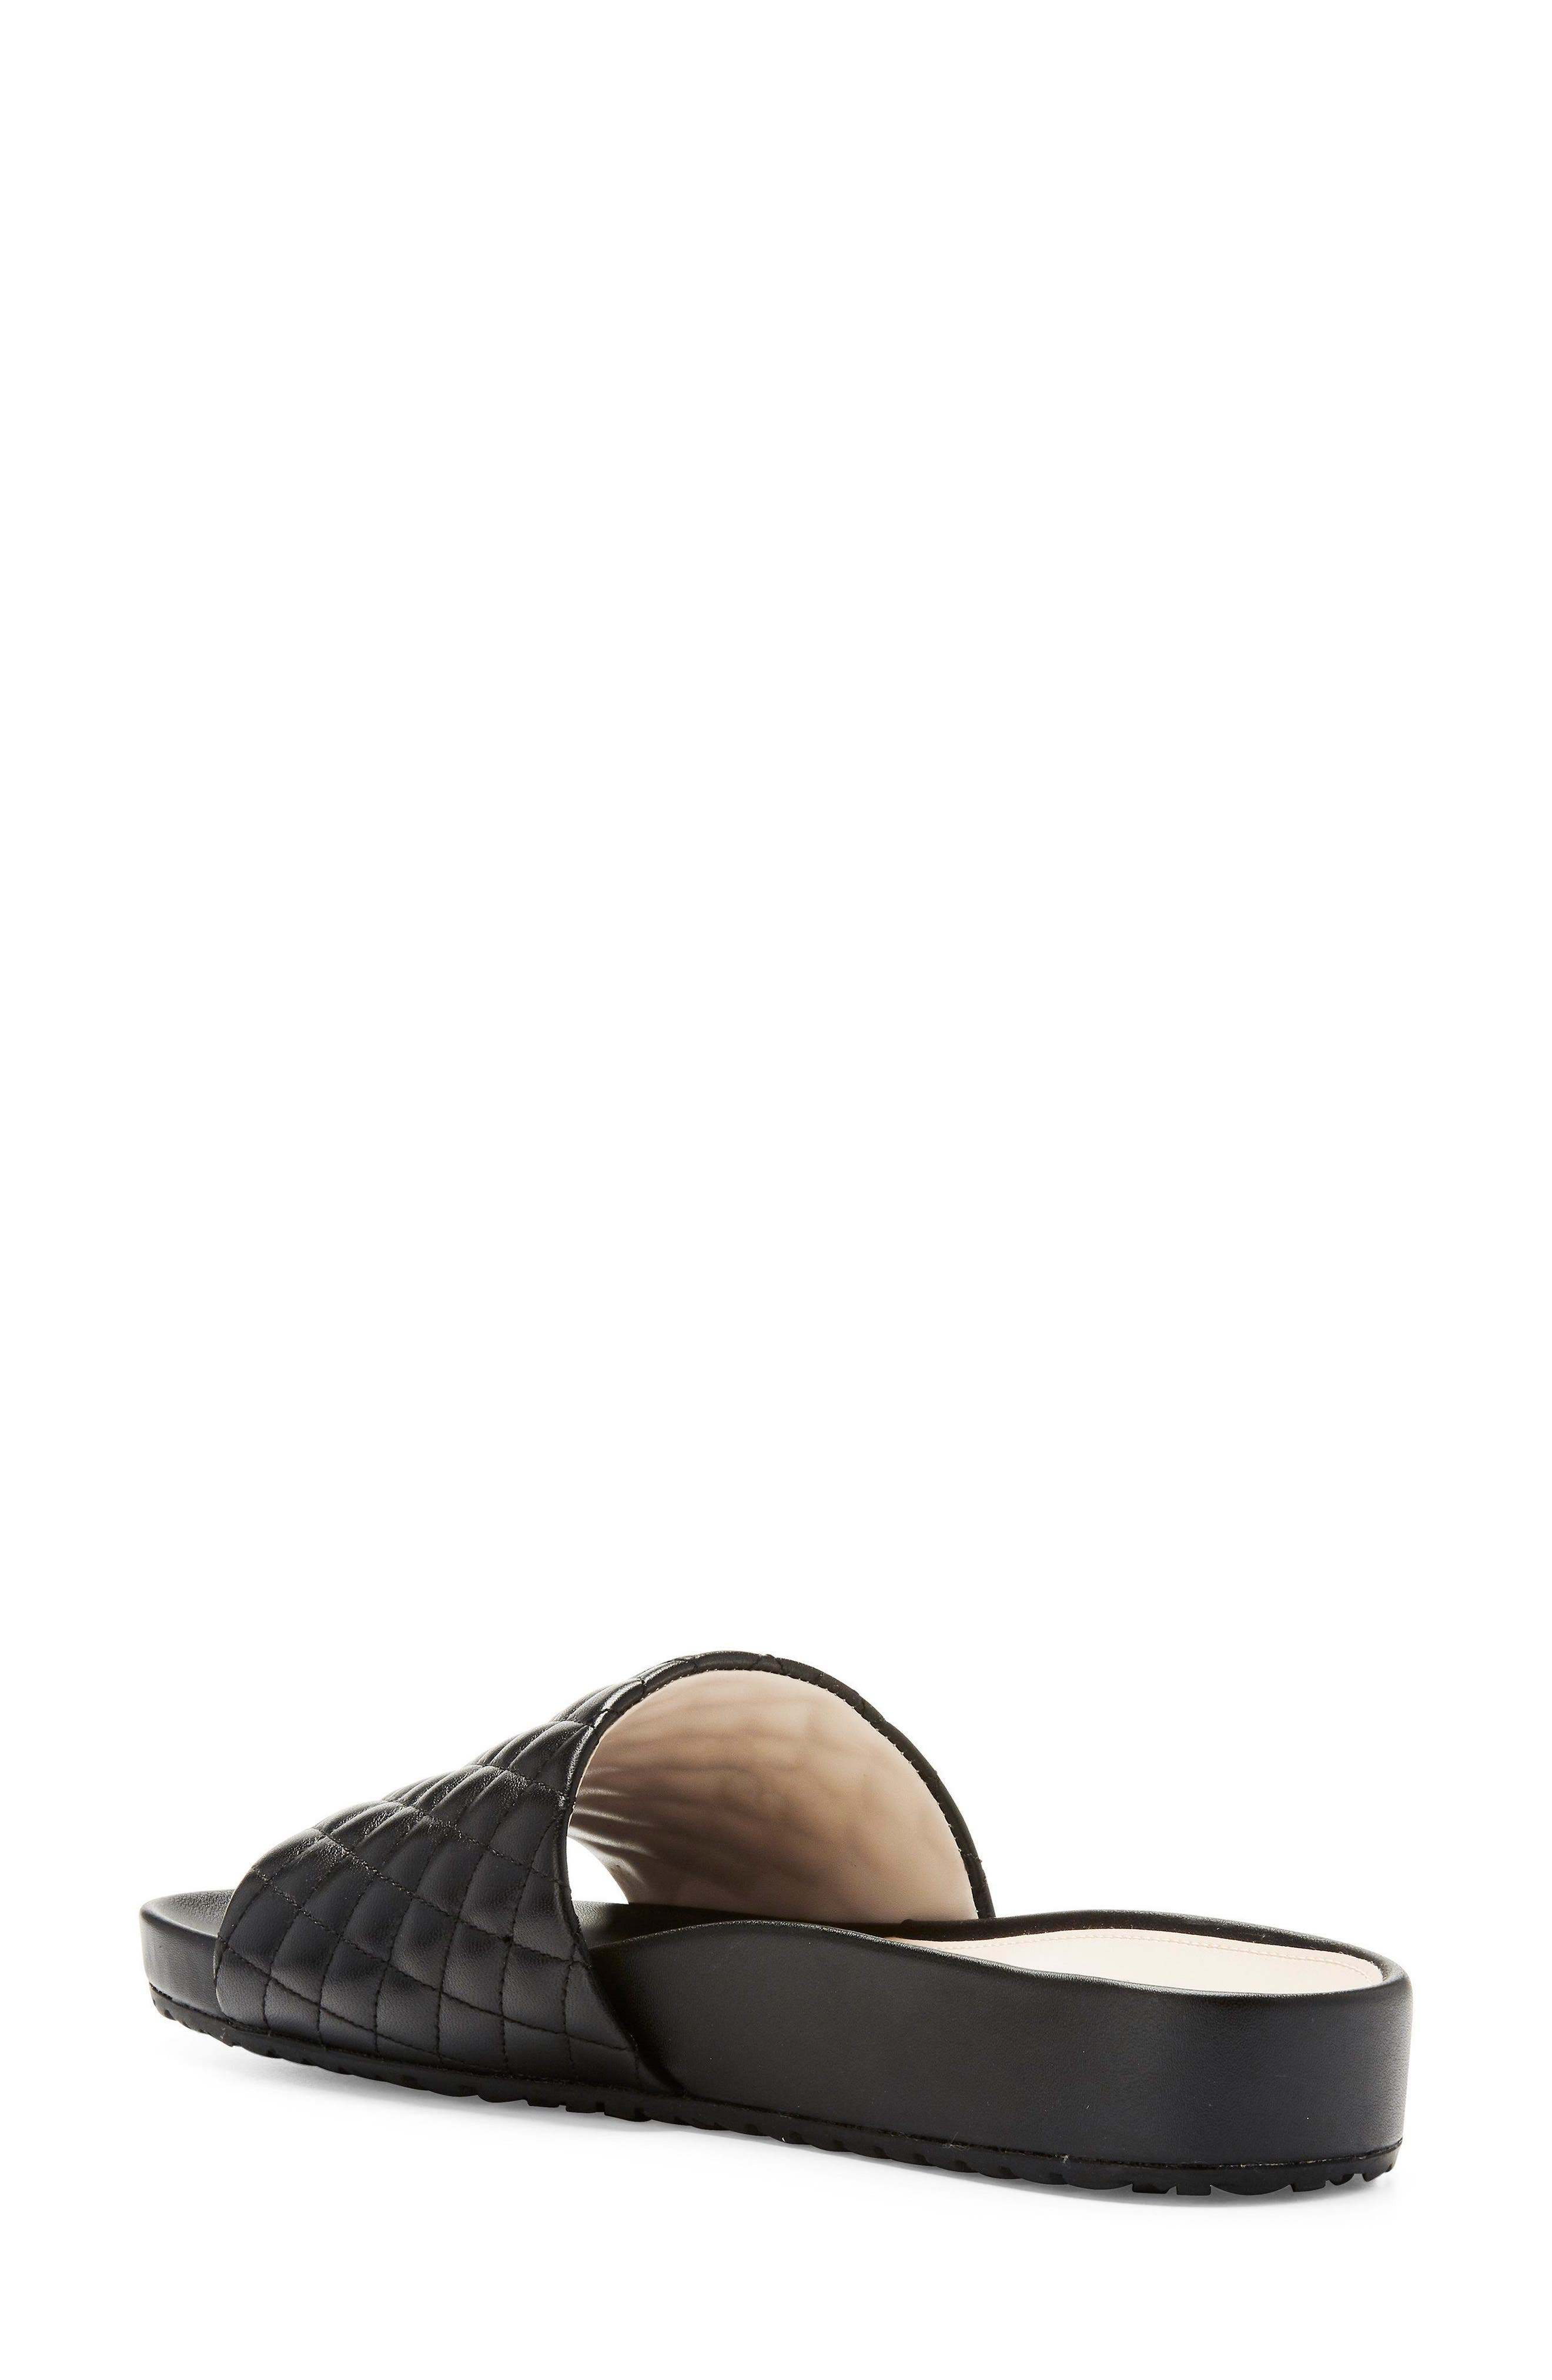 Pinch Montauk Slide Sandal,                             Alternate thumbnail 2, color,                             001